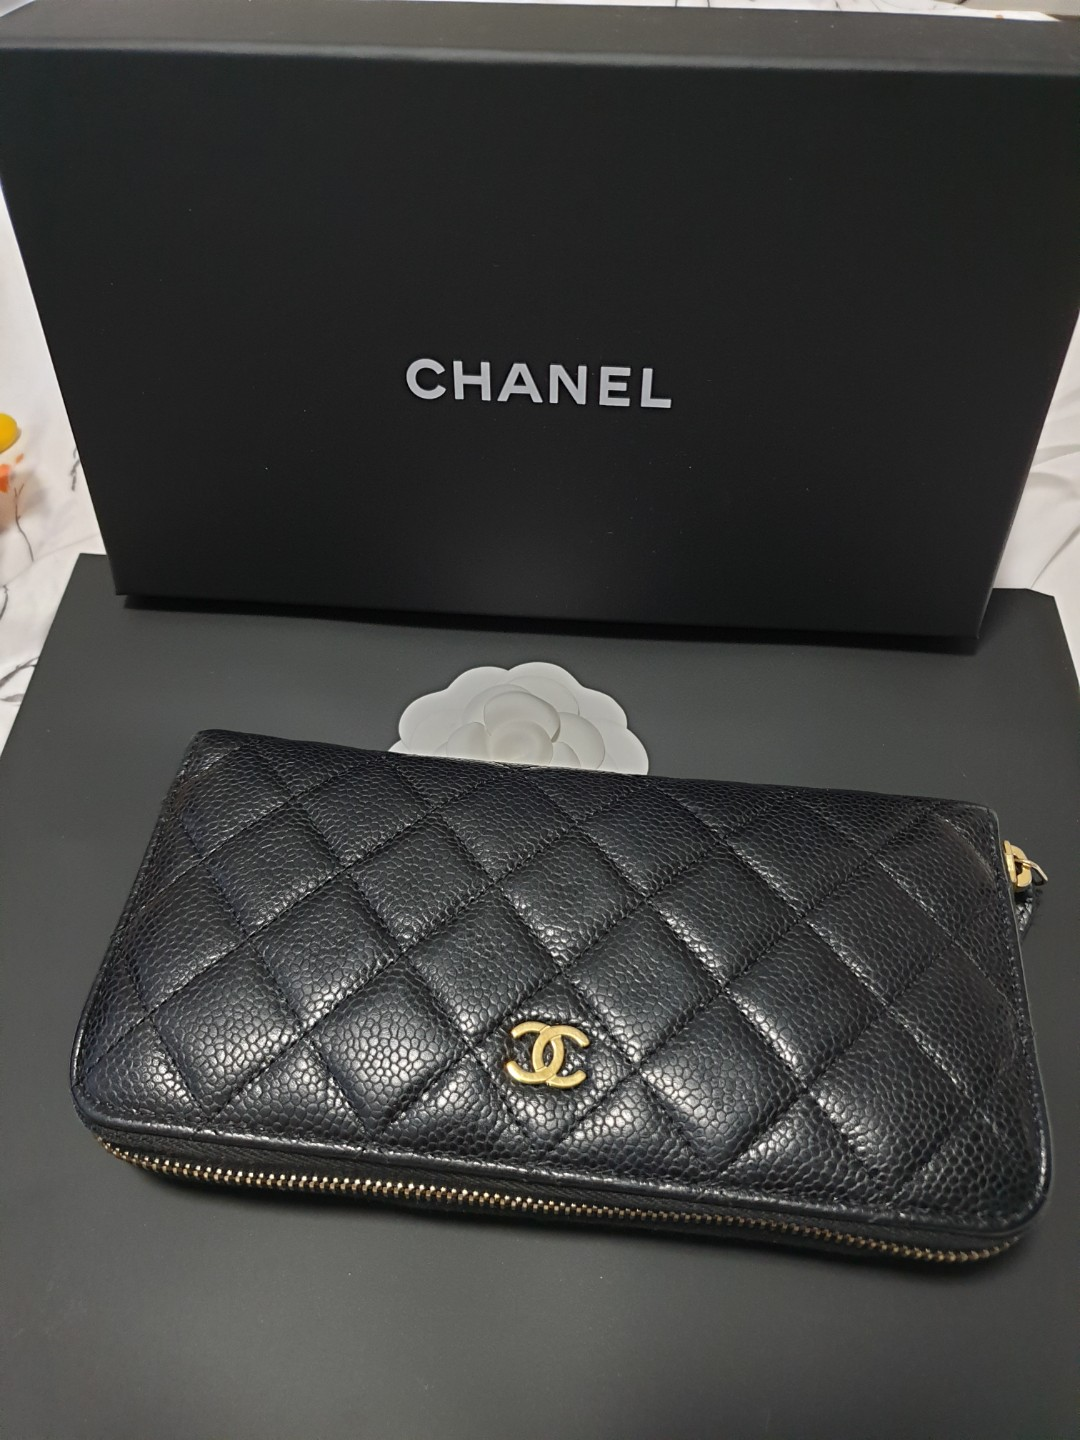 33a17676f0f582 Preloved Chanel wallet, Luxury, Bags & Wallets, Wallets on Carousell